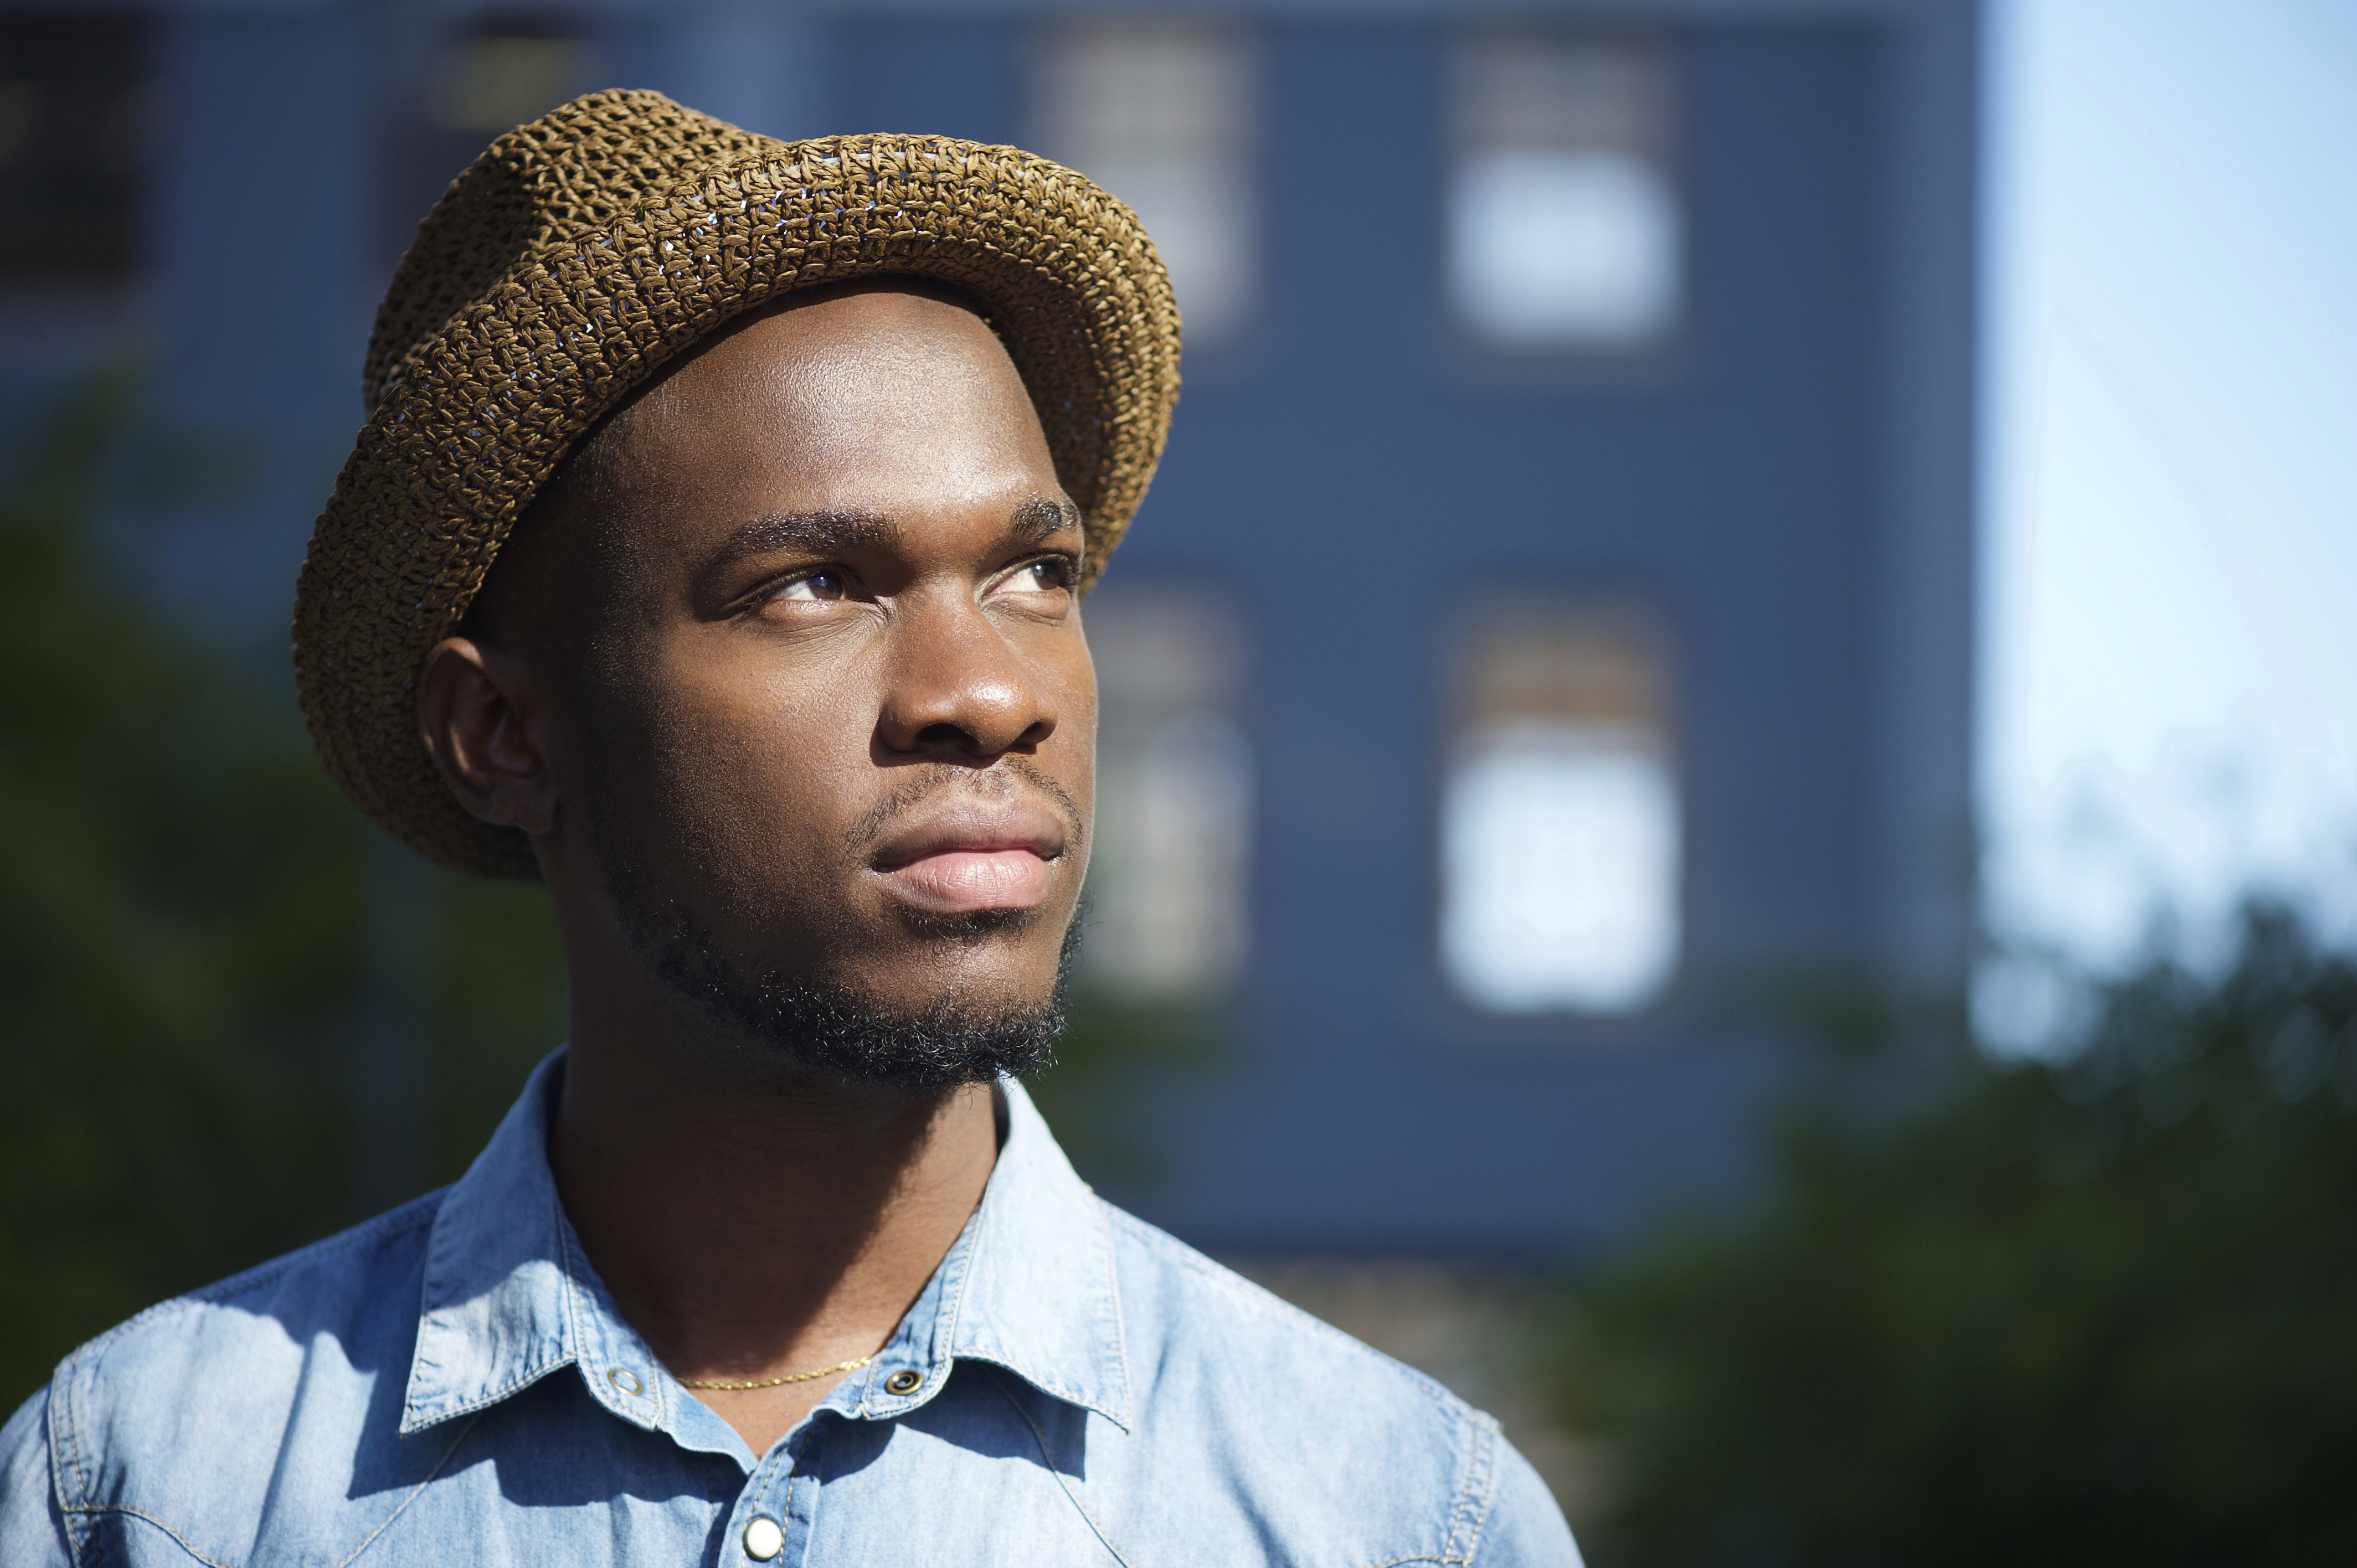 Close up of a young man wearing a hat, building in background.